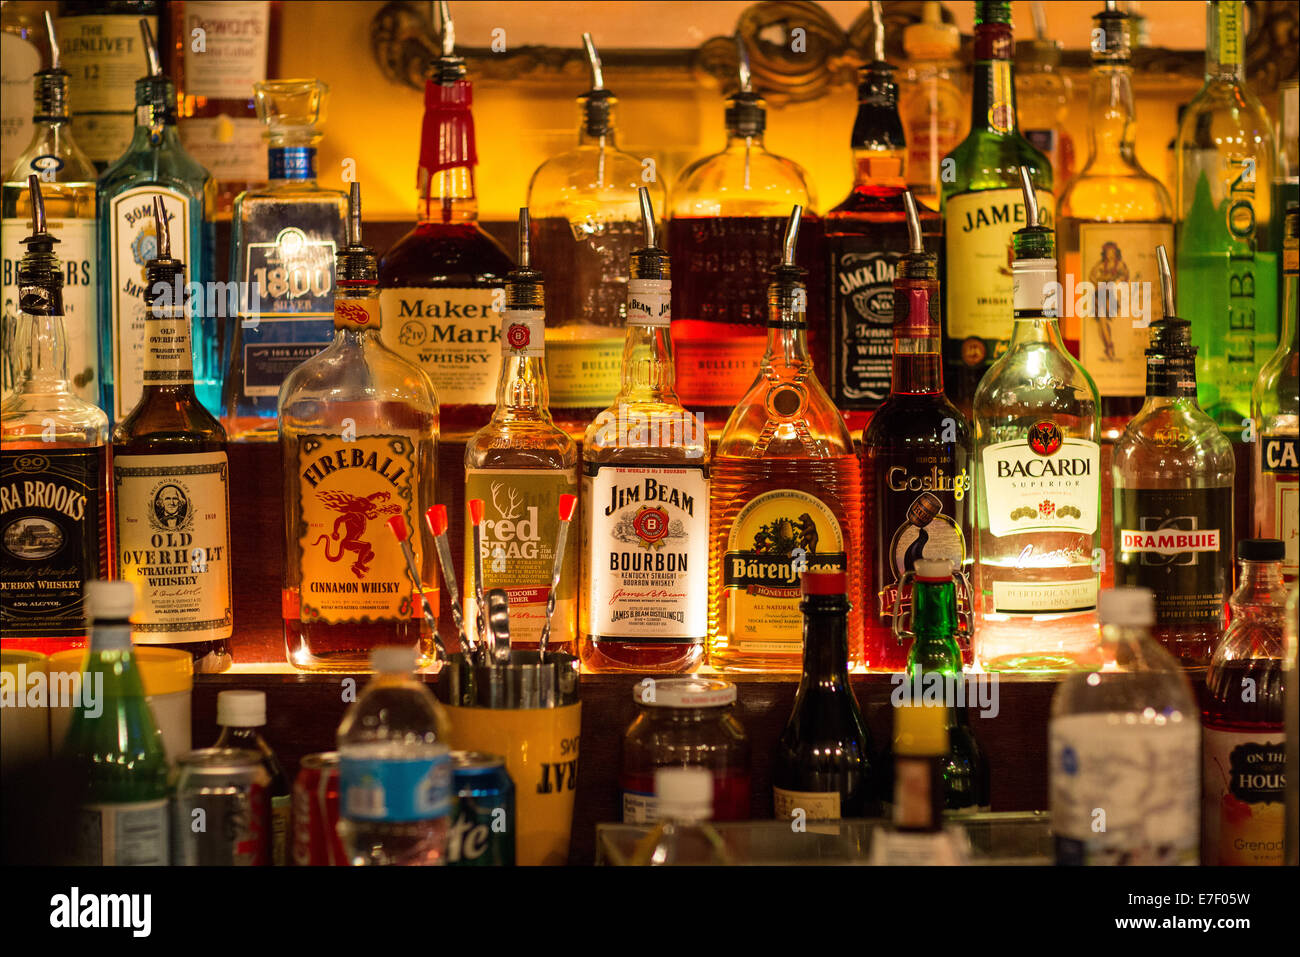 Liquor shelf in a restaurant Stock Photo: 73473509 - Alamy